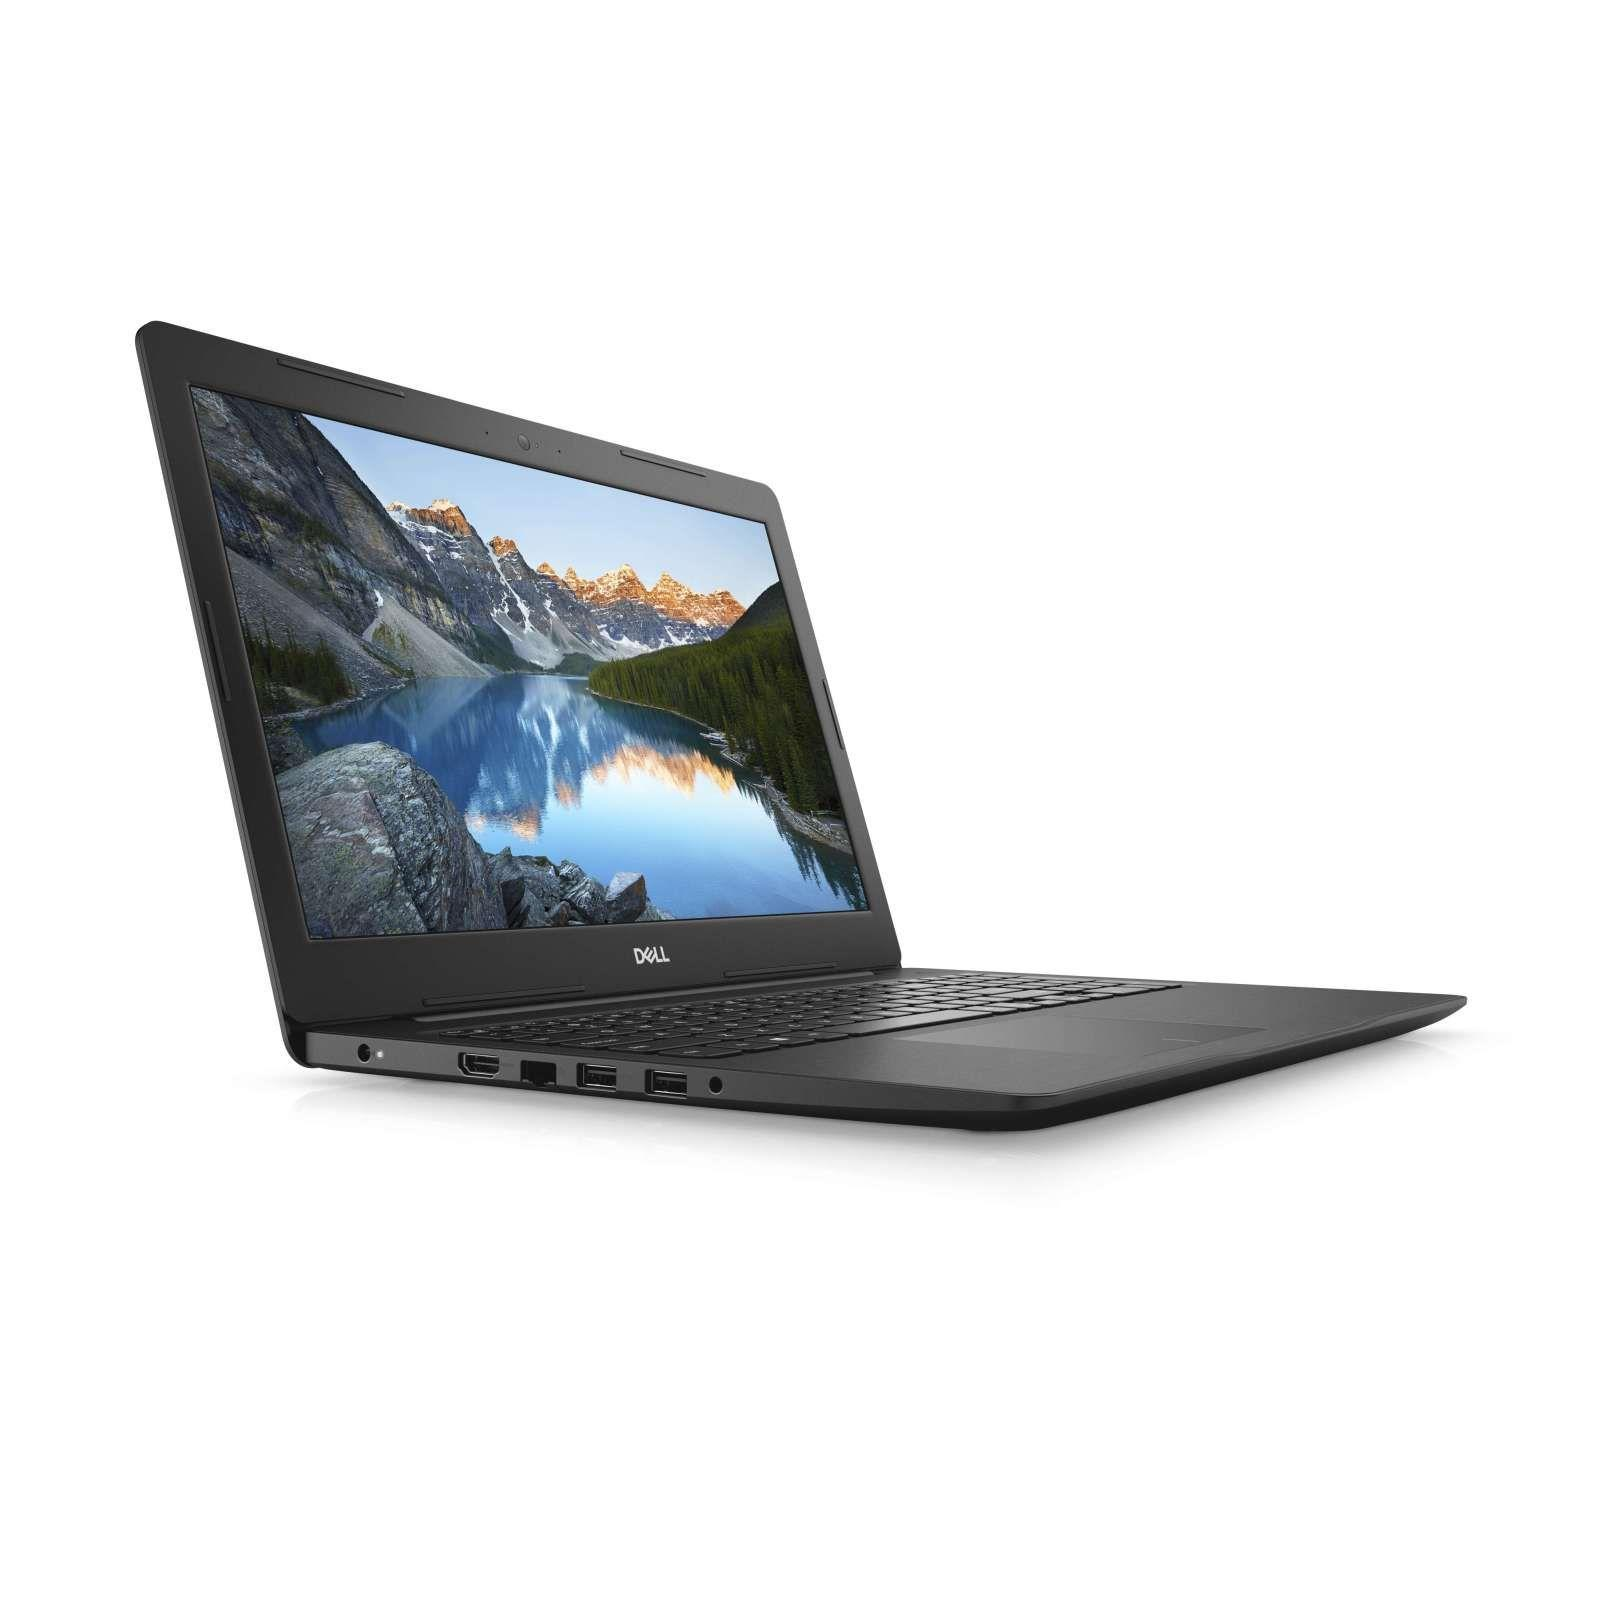 DELL 5570-825412G W10 15.6 IN INTEL CORE I5-8250U 4GB 1TB HDD WIN 10